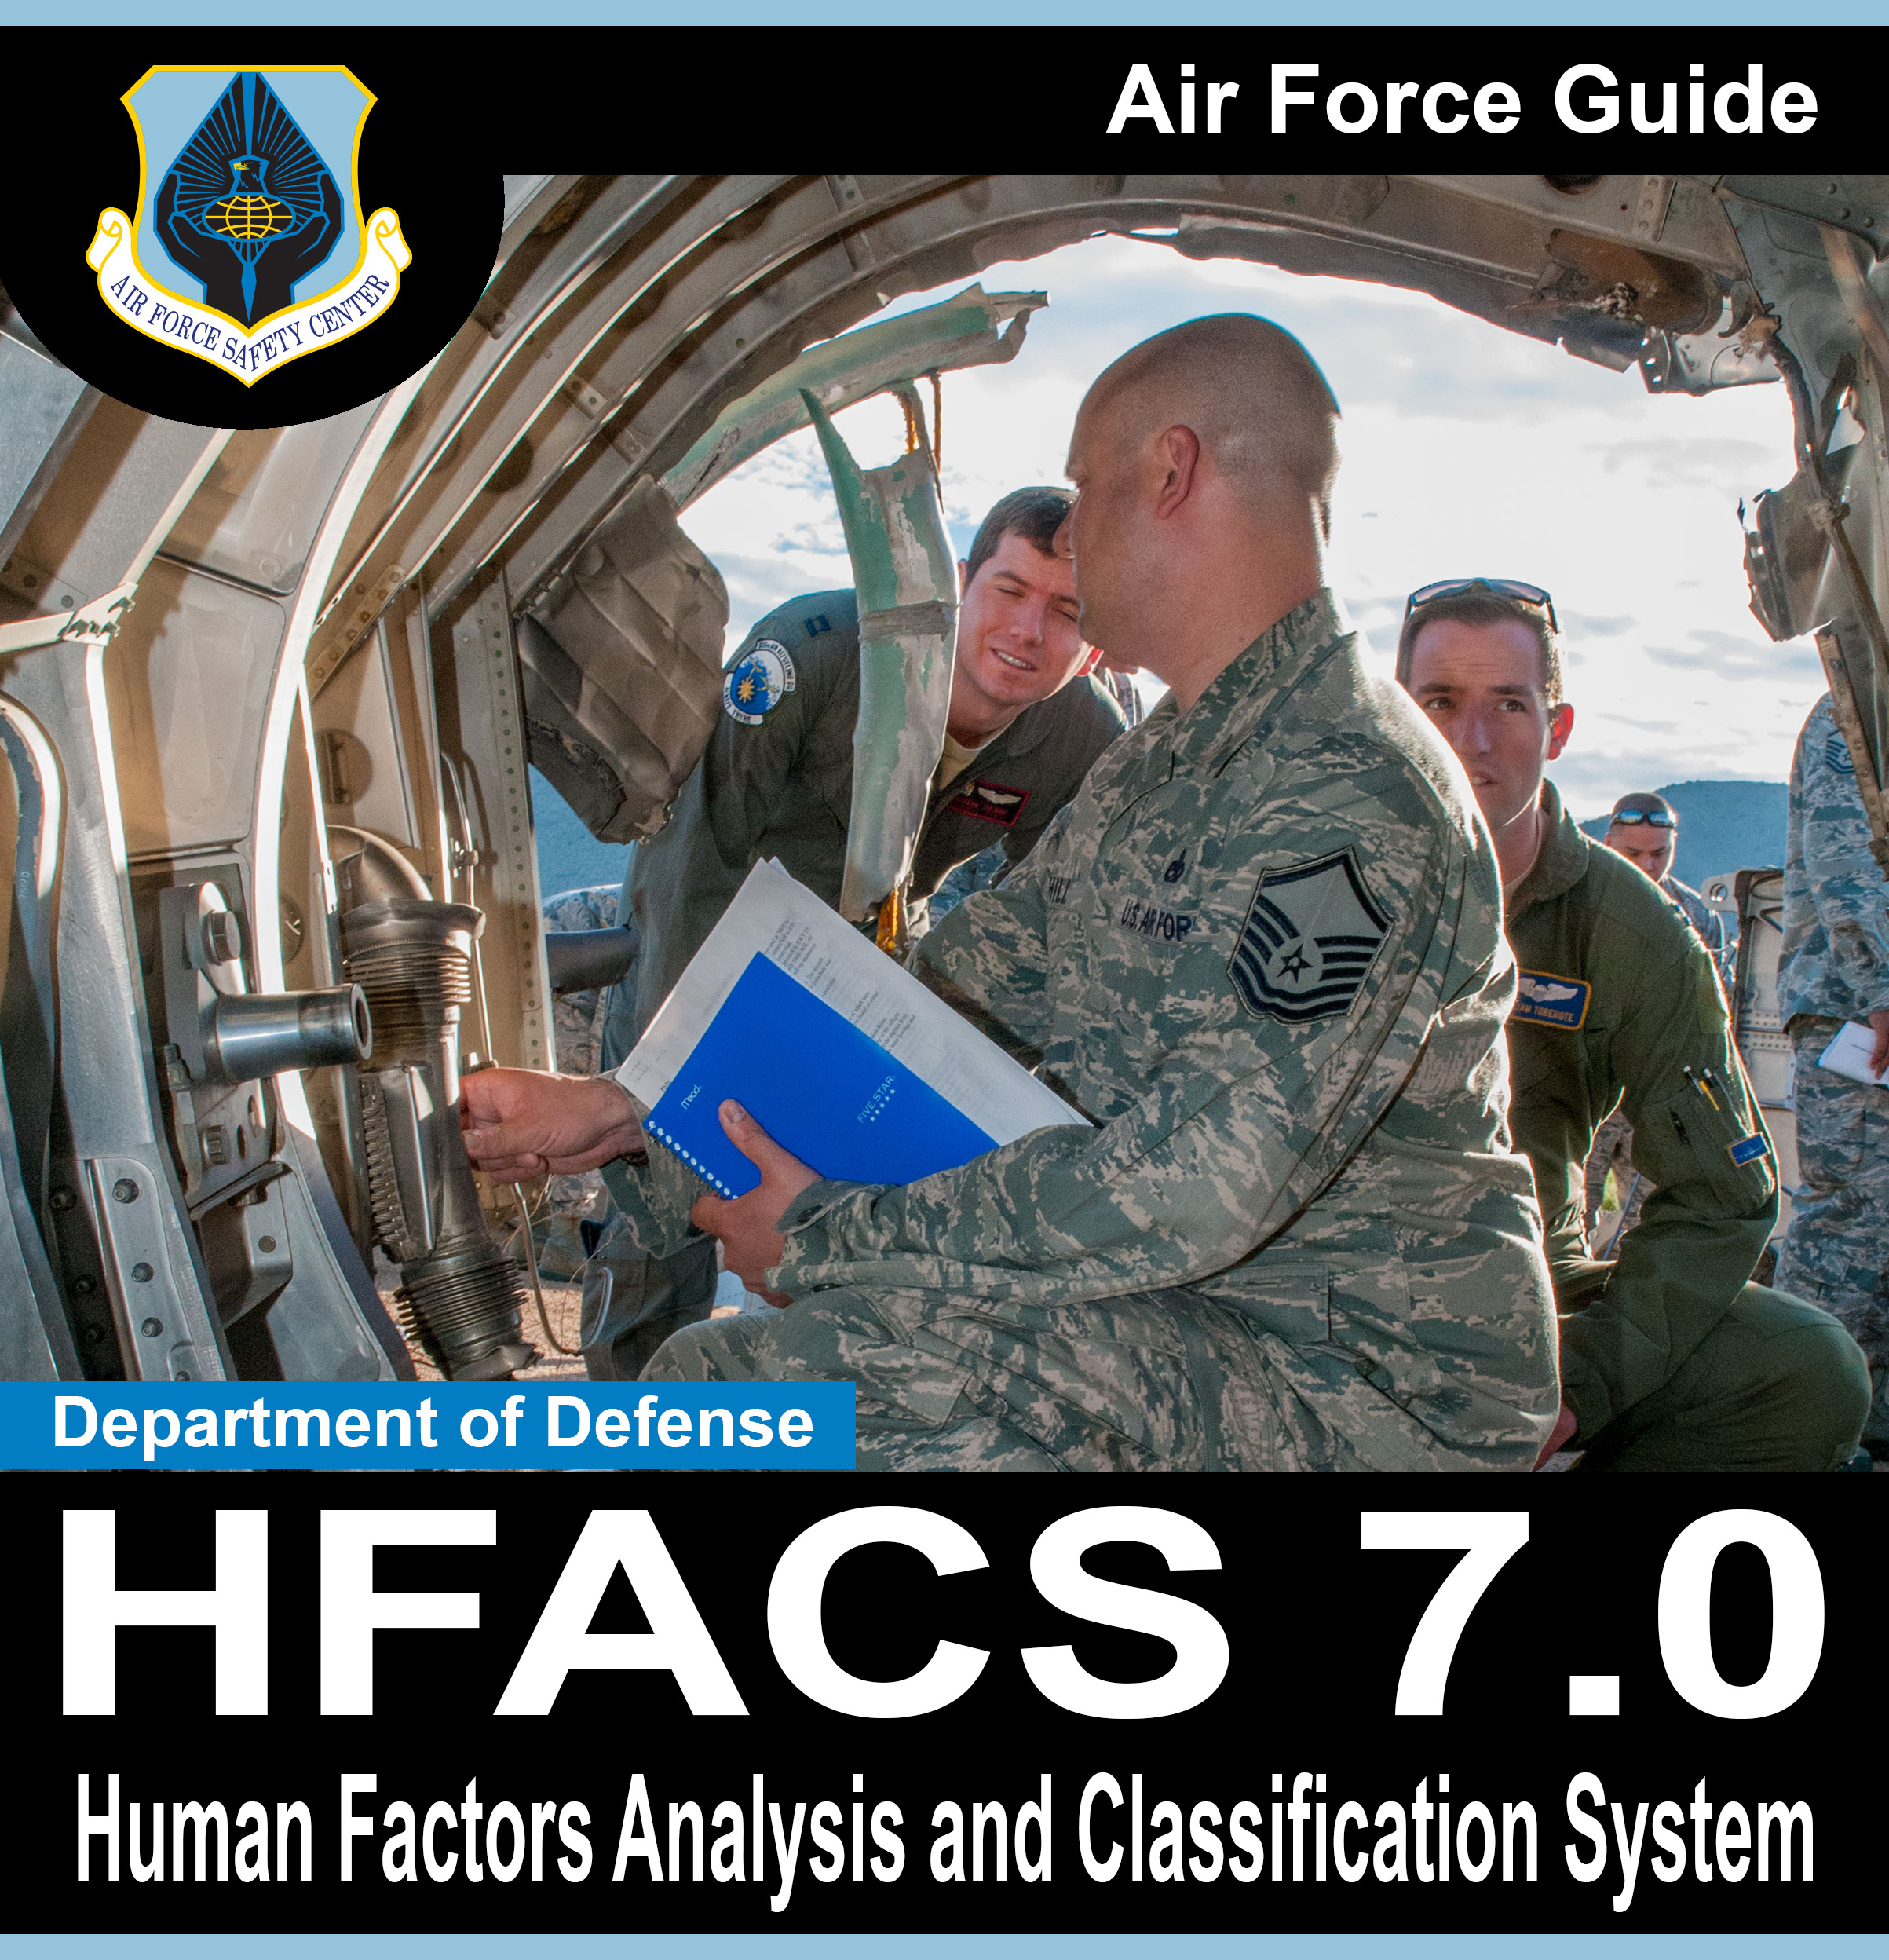 Human Factors Analysis and Classifications System Poster